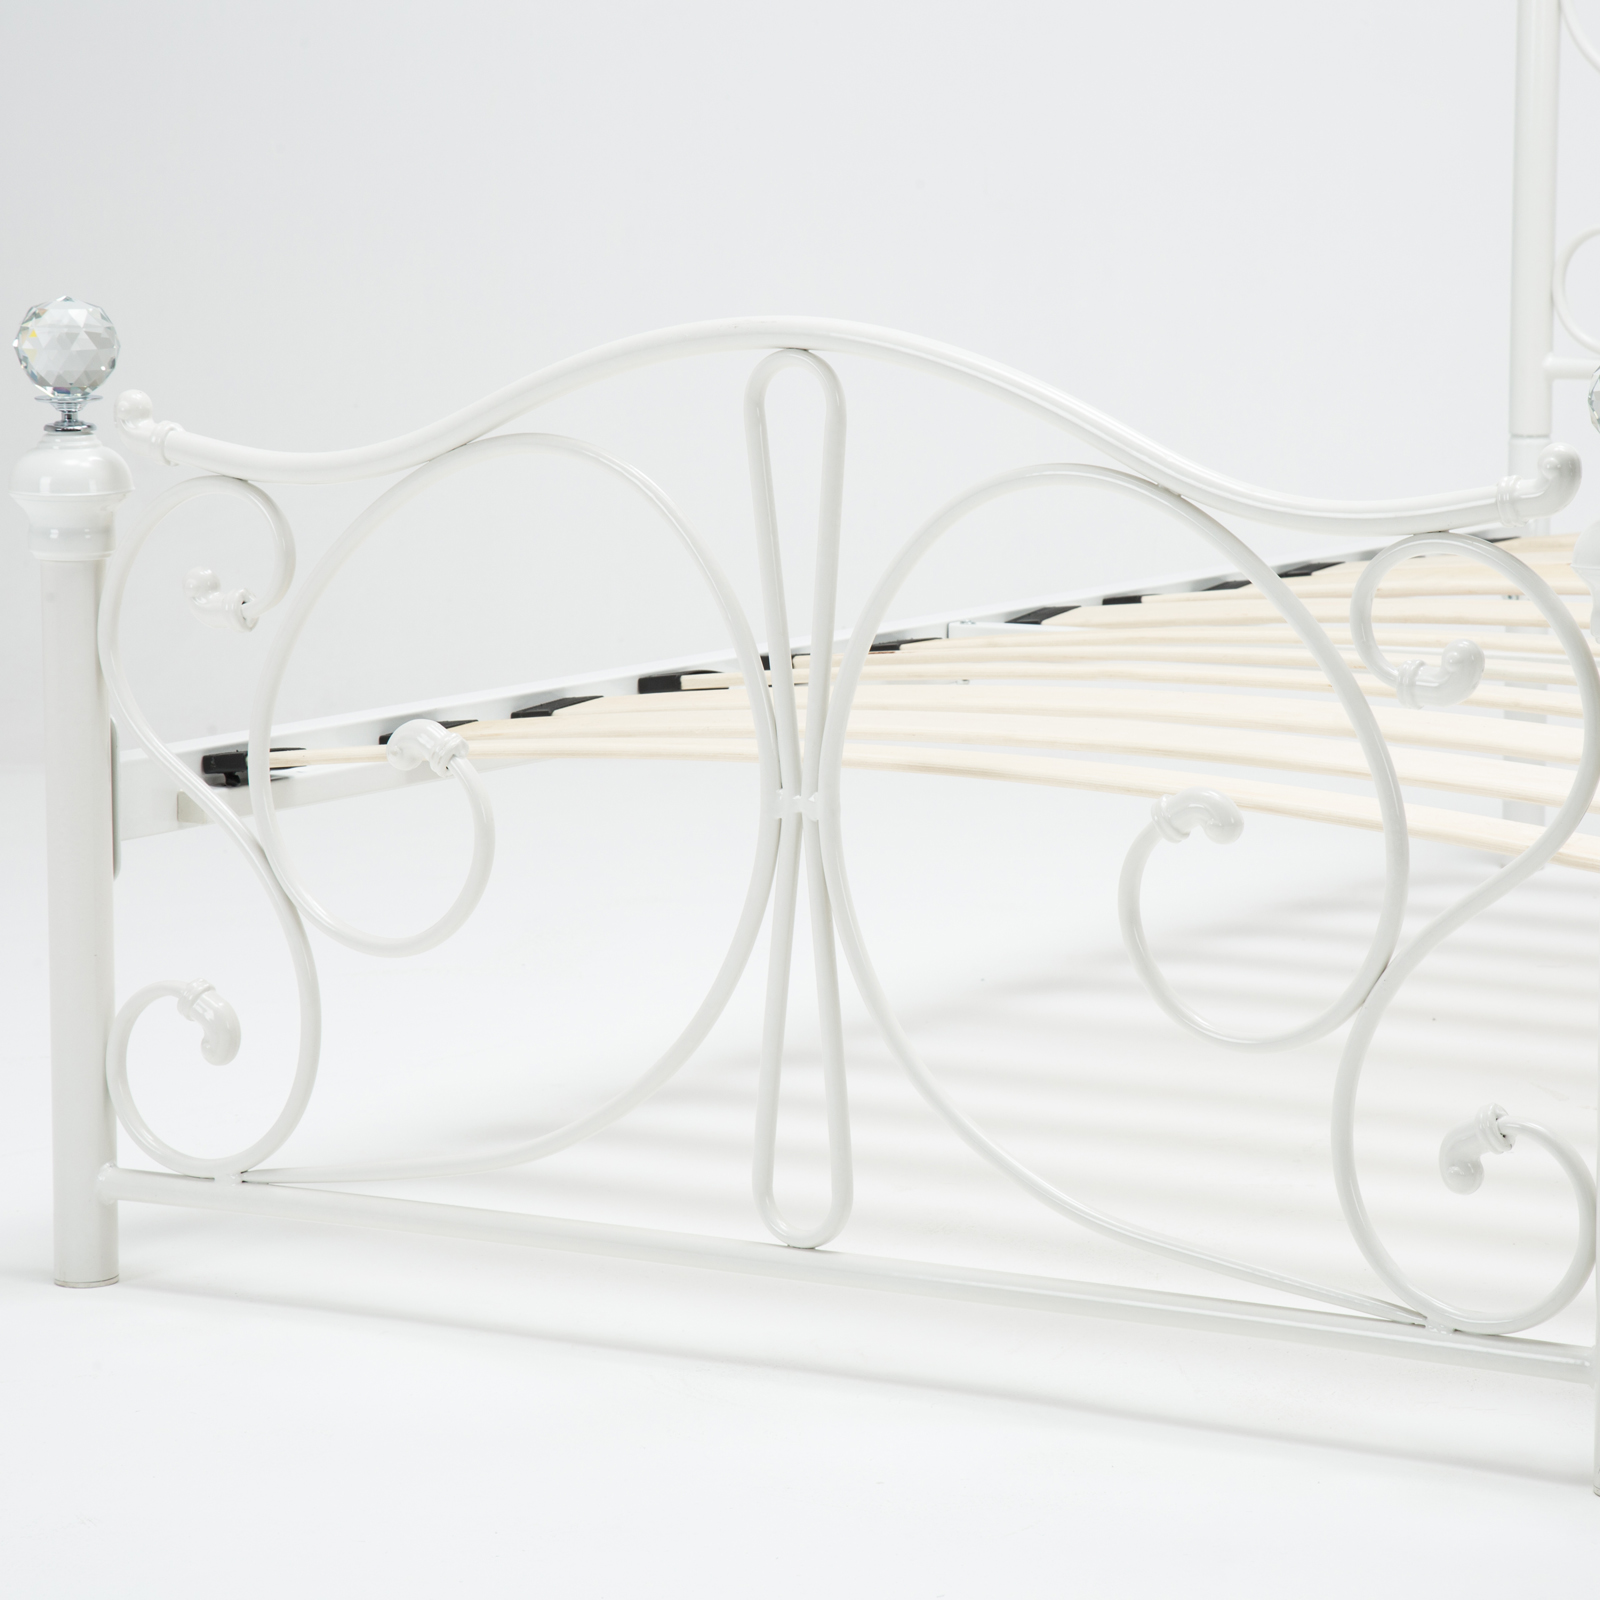 Twin full size metal bed frame cry finial headboard for Twin footboard